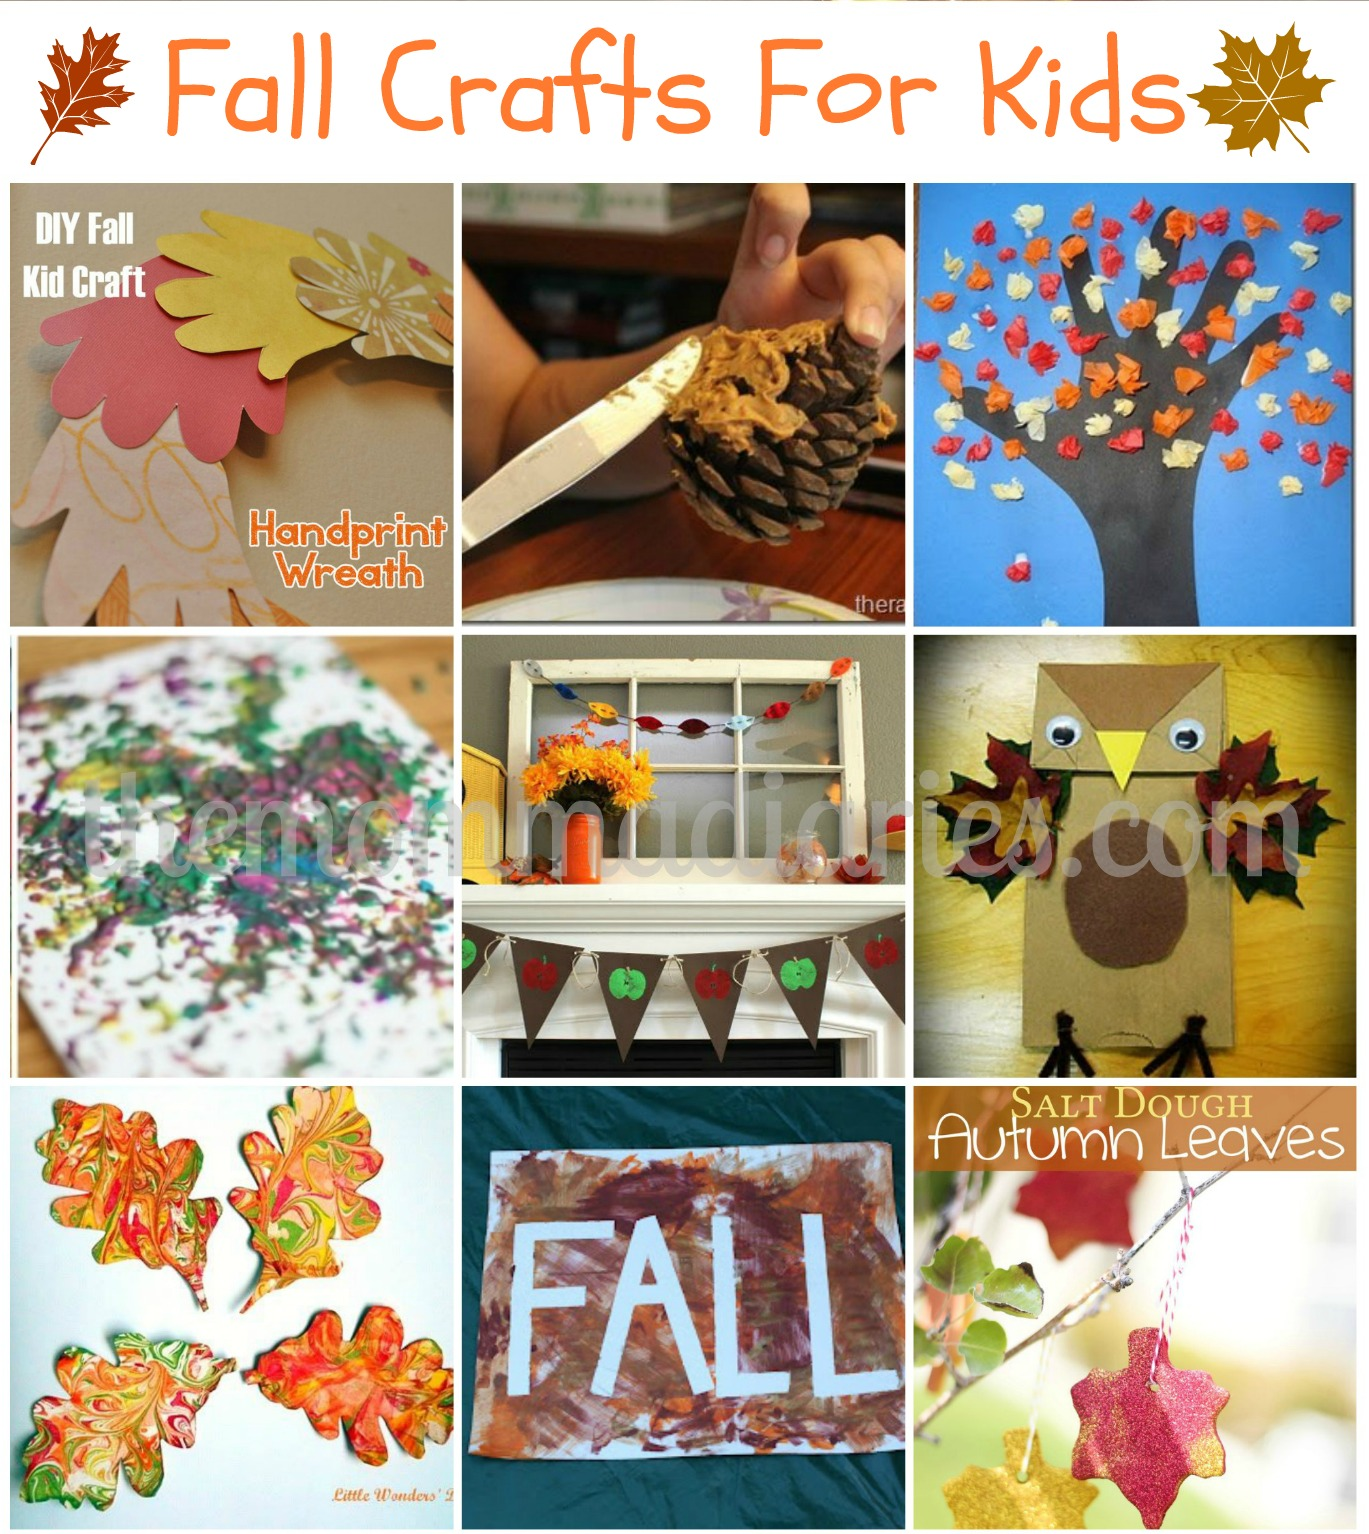 Fall crafts for kids the momma diaries for Fall craft ideas for toddlers